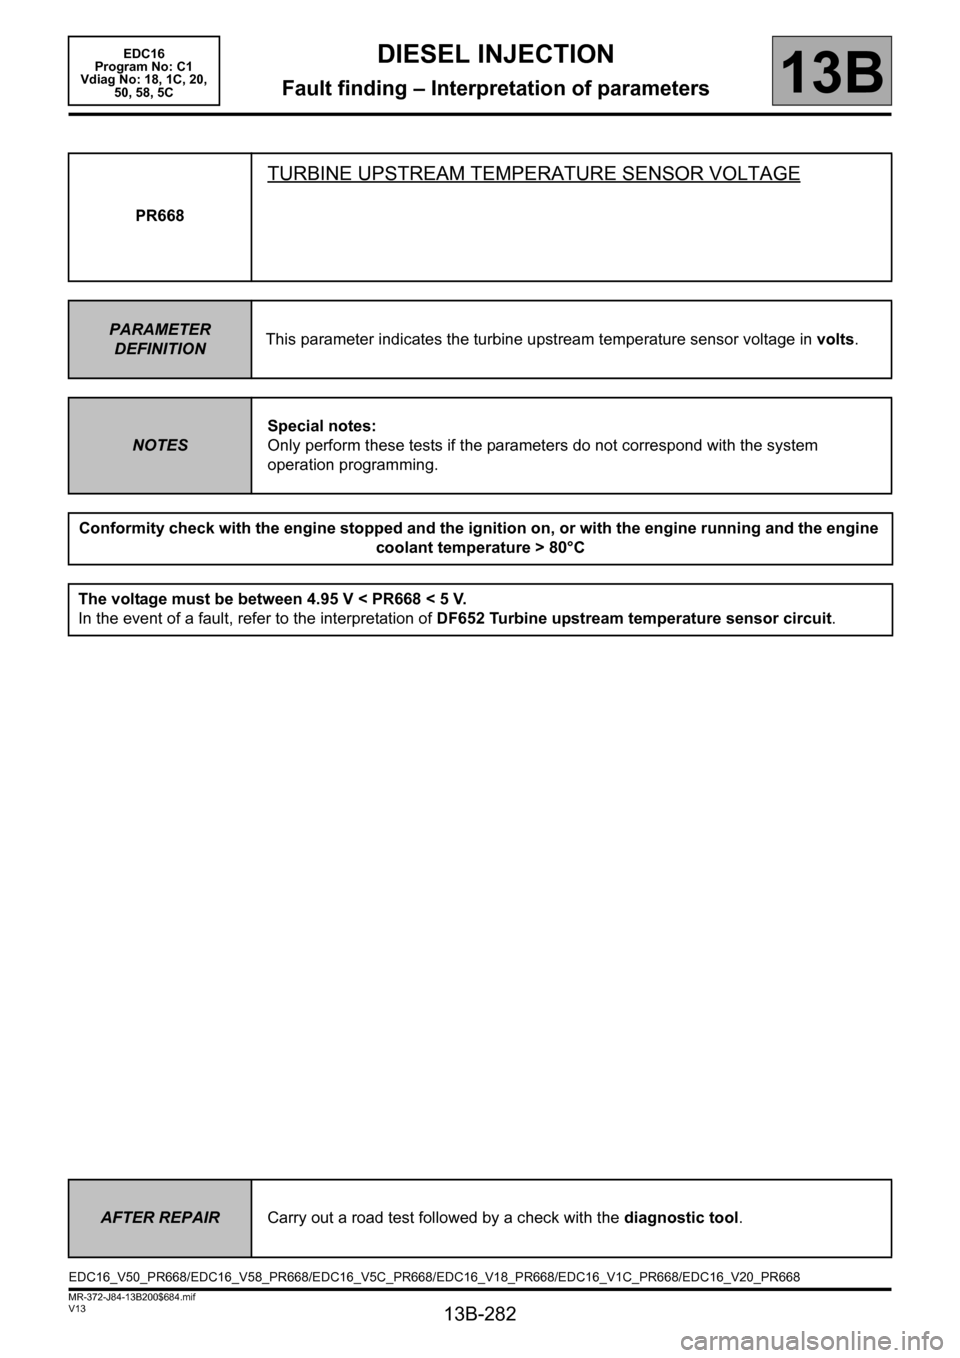 RENAULT SCENIC 2011 J95 / 3.G Engine And Peripherals EDC16 Workshop Manual, Page 282